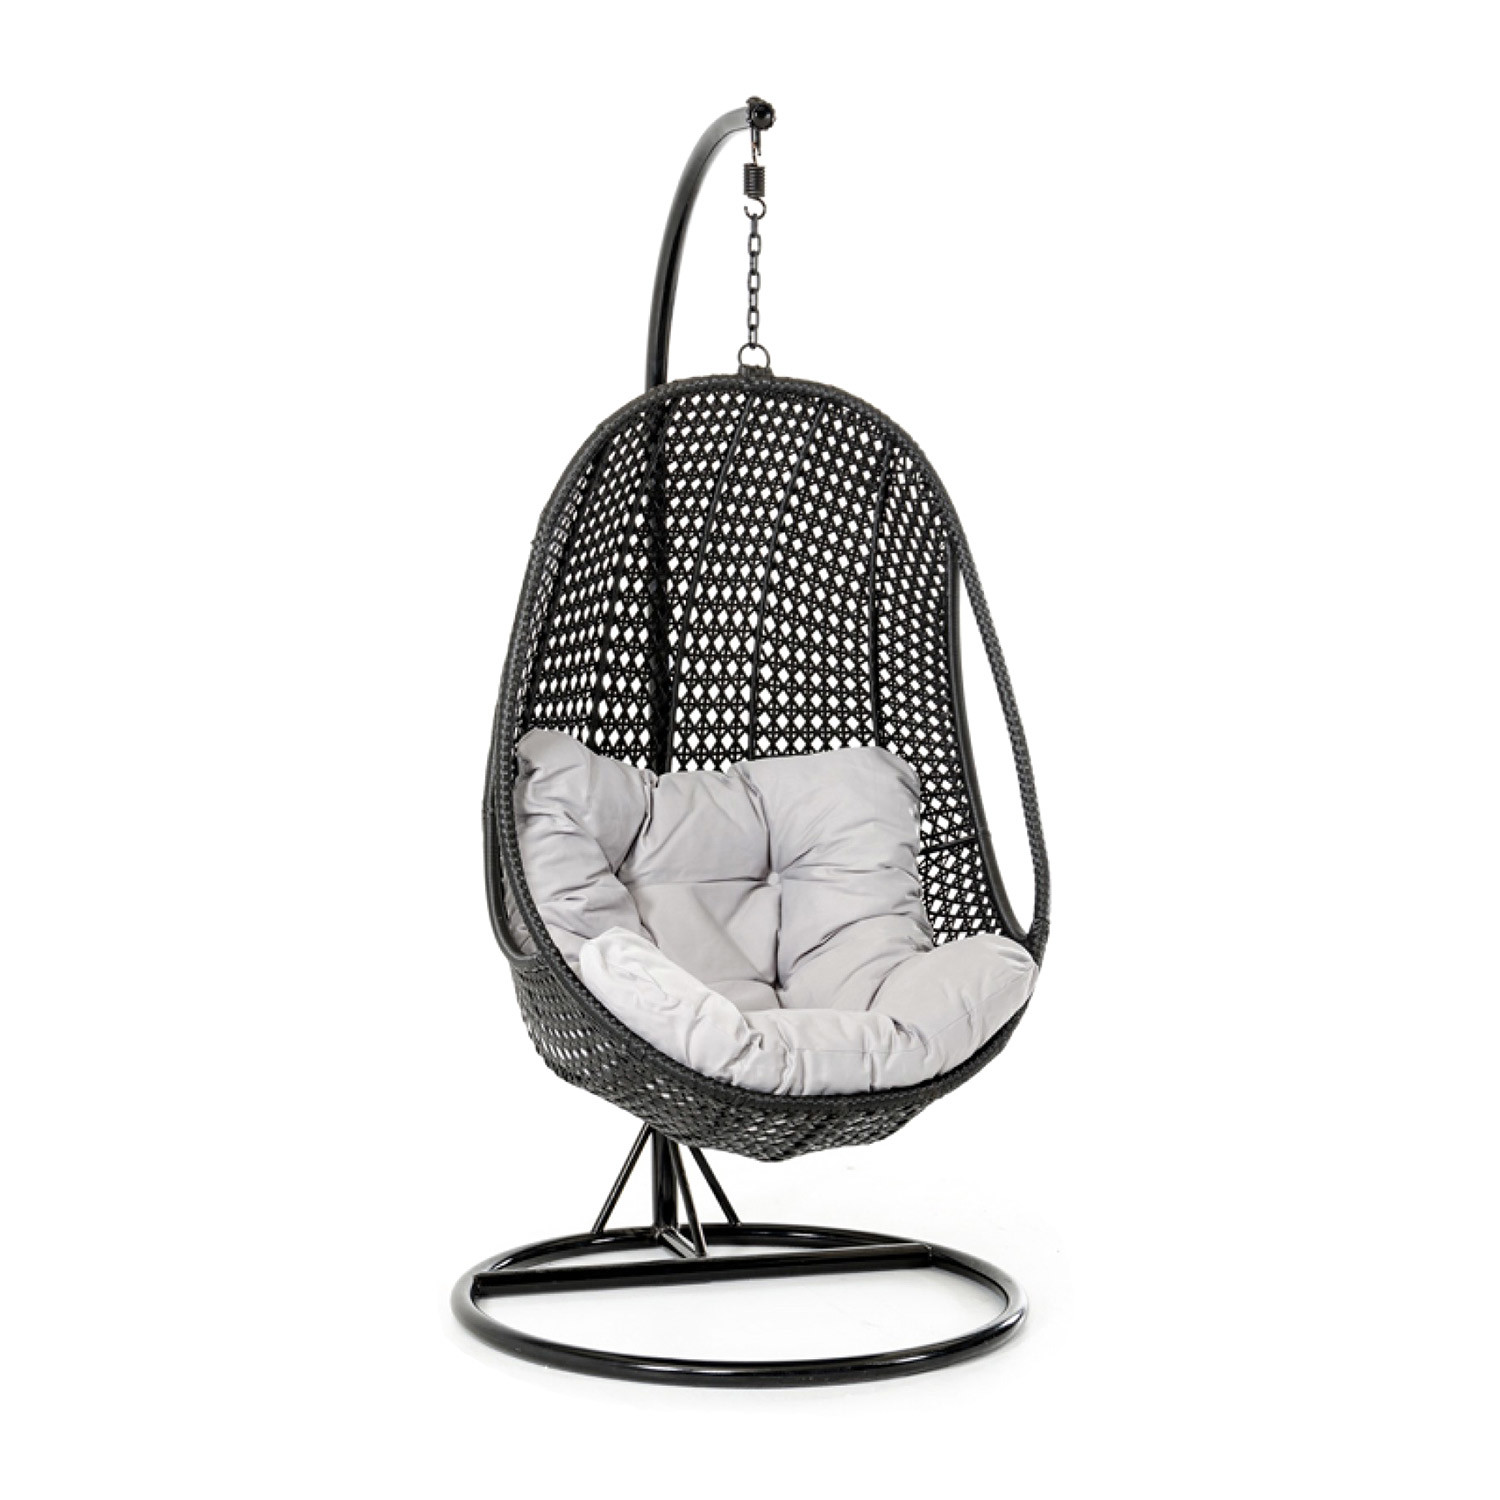 Renava Oahu Outdoor Hanging Chair - VIG - Touch of Modern